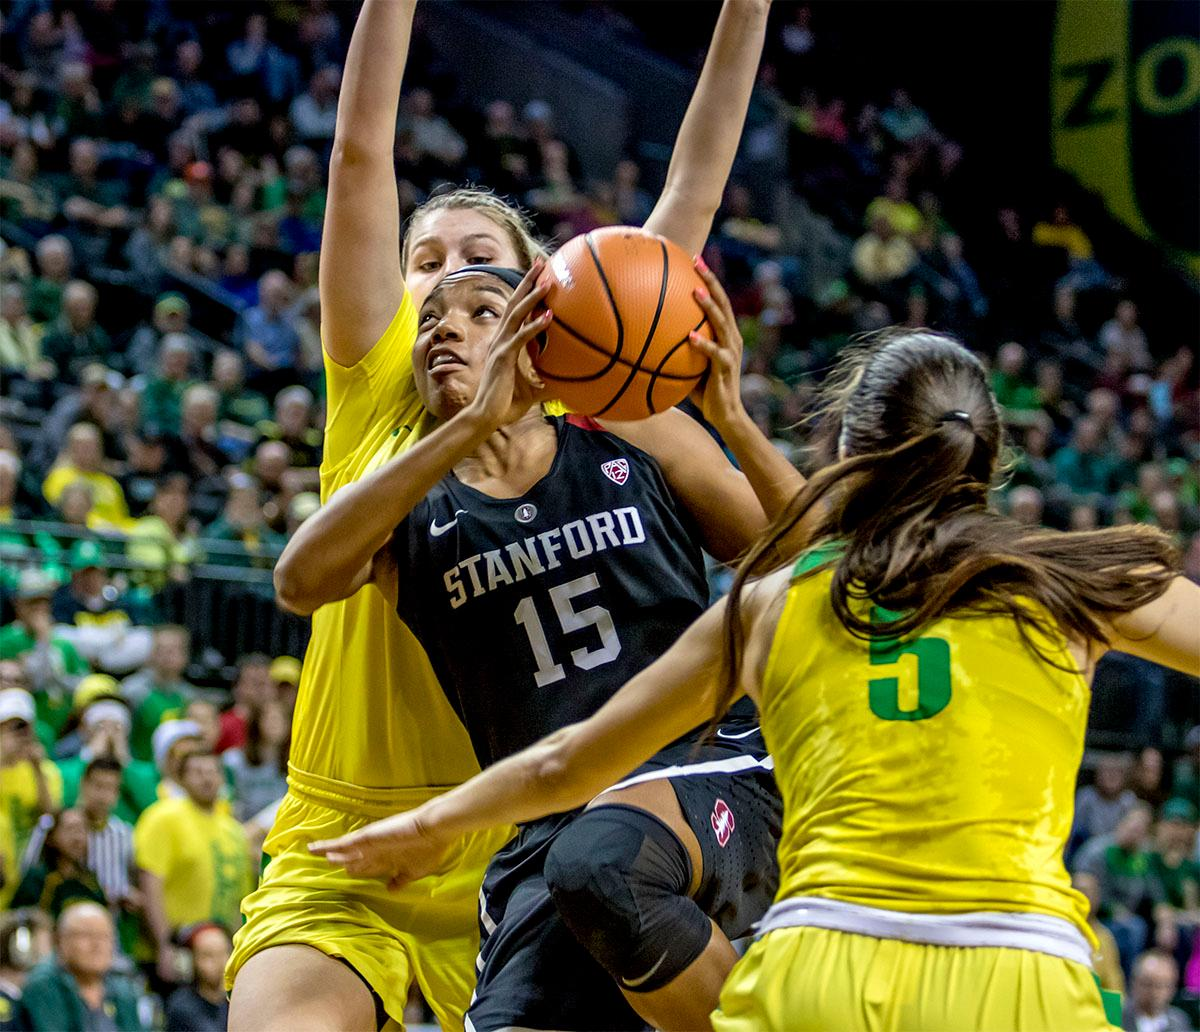 The Cardinal's Maya Dodson (#15) goes up for the basket. The Stanford Cardinal defeated the Oregon Ducks 78-65 on Sunday afternoon at Matthew Knight Arena. Stanford is now 10-2 in conference play and with this loss the Ducks drop to 10-2. Leading the Stanford Cardinal was Brittany McPhee with 33 points, Alanna Smith with 14 points, and Kiana Williams with 14 points. For the Ducks Sabrina Ionescu led with 22 points, Ruthy Hebard added 16 points, and Satou Sabally put in 14 points. Photo by August Frank, Oregon News Lab